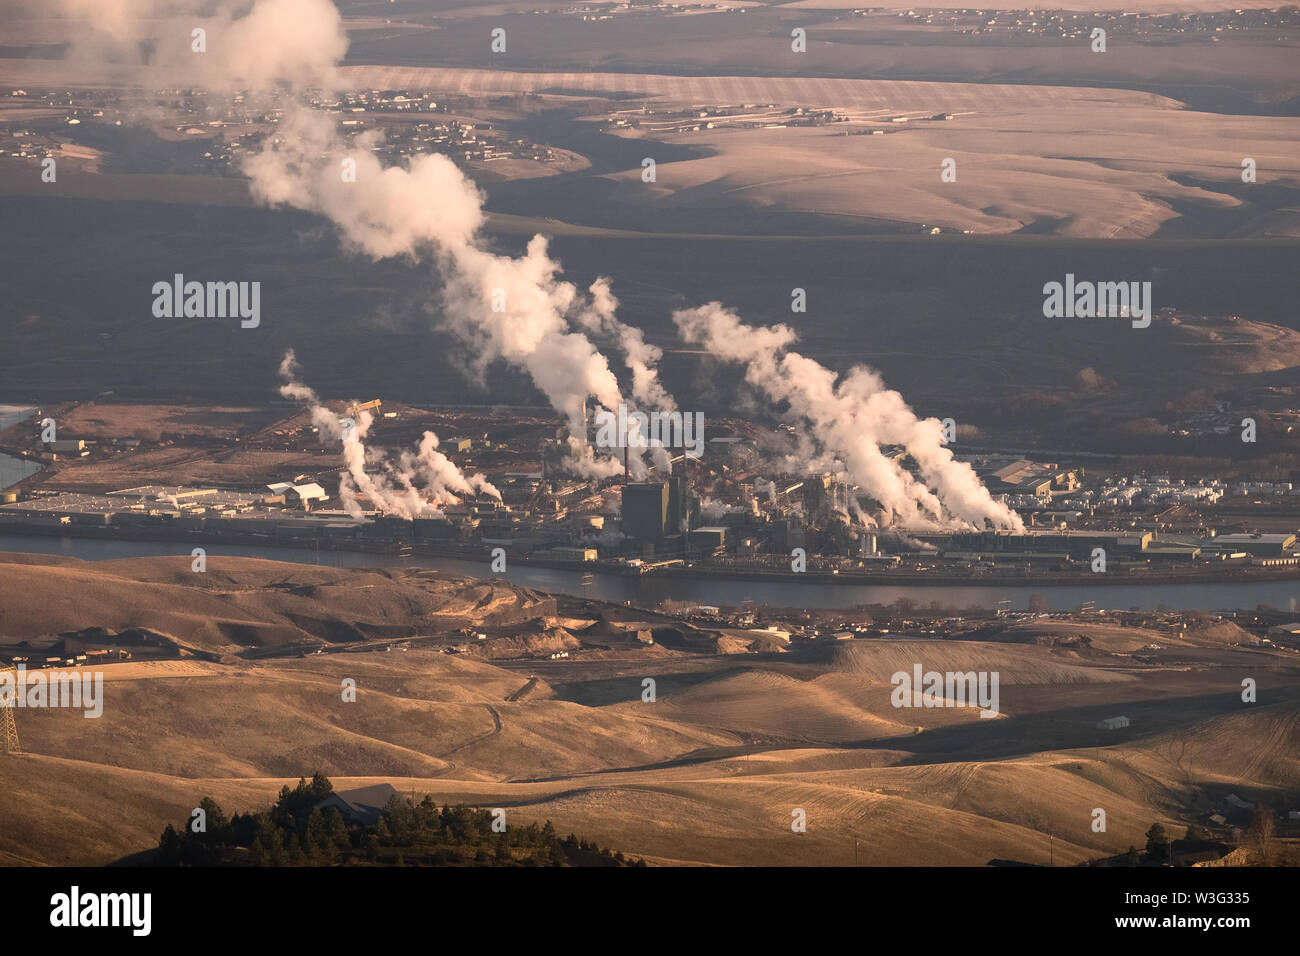 Smoke and fumes from the Clearwater paper mill on the river in Lewiston, Idaho - Stock Image